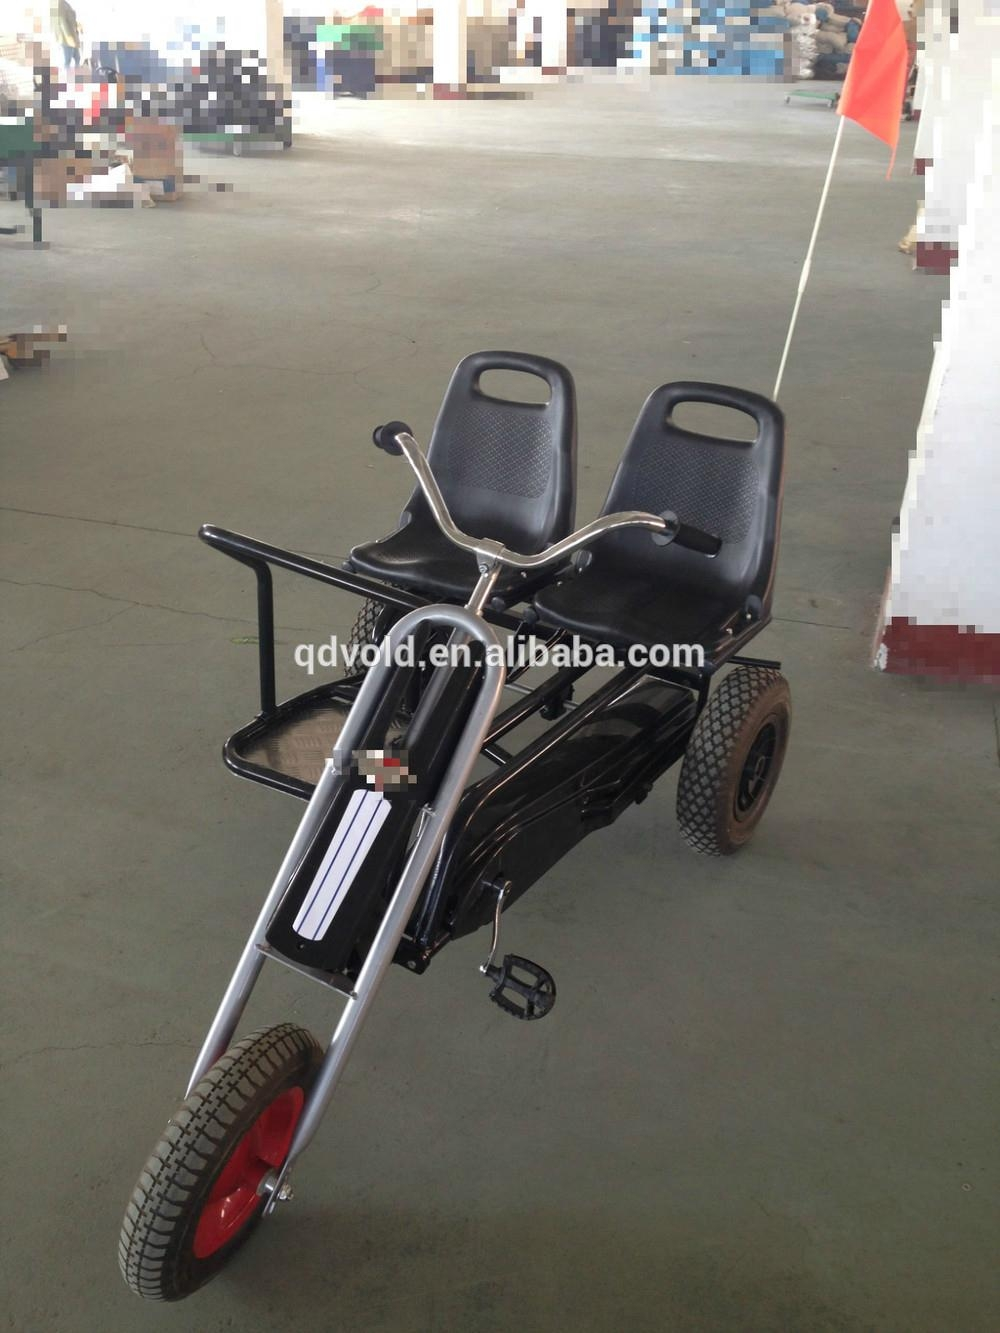 Two seat three wheel adult go kart for kids 1